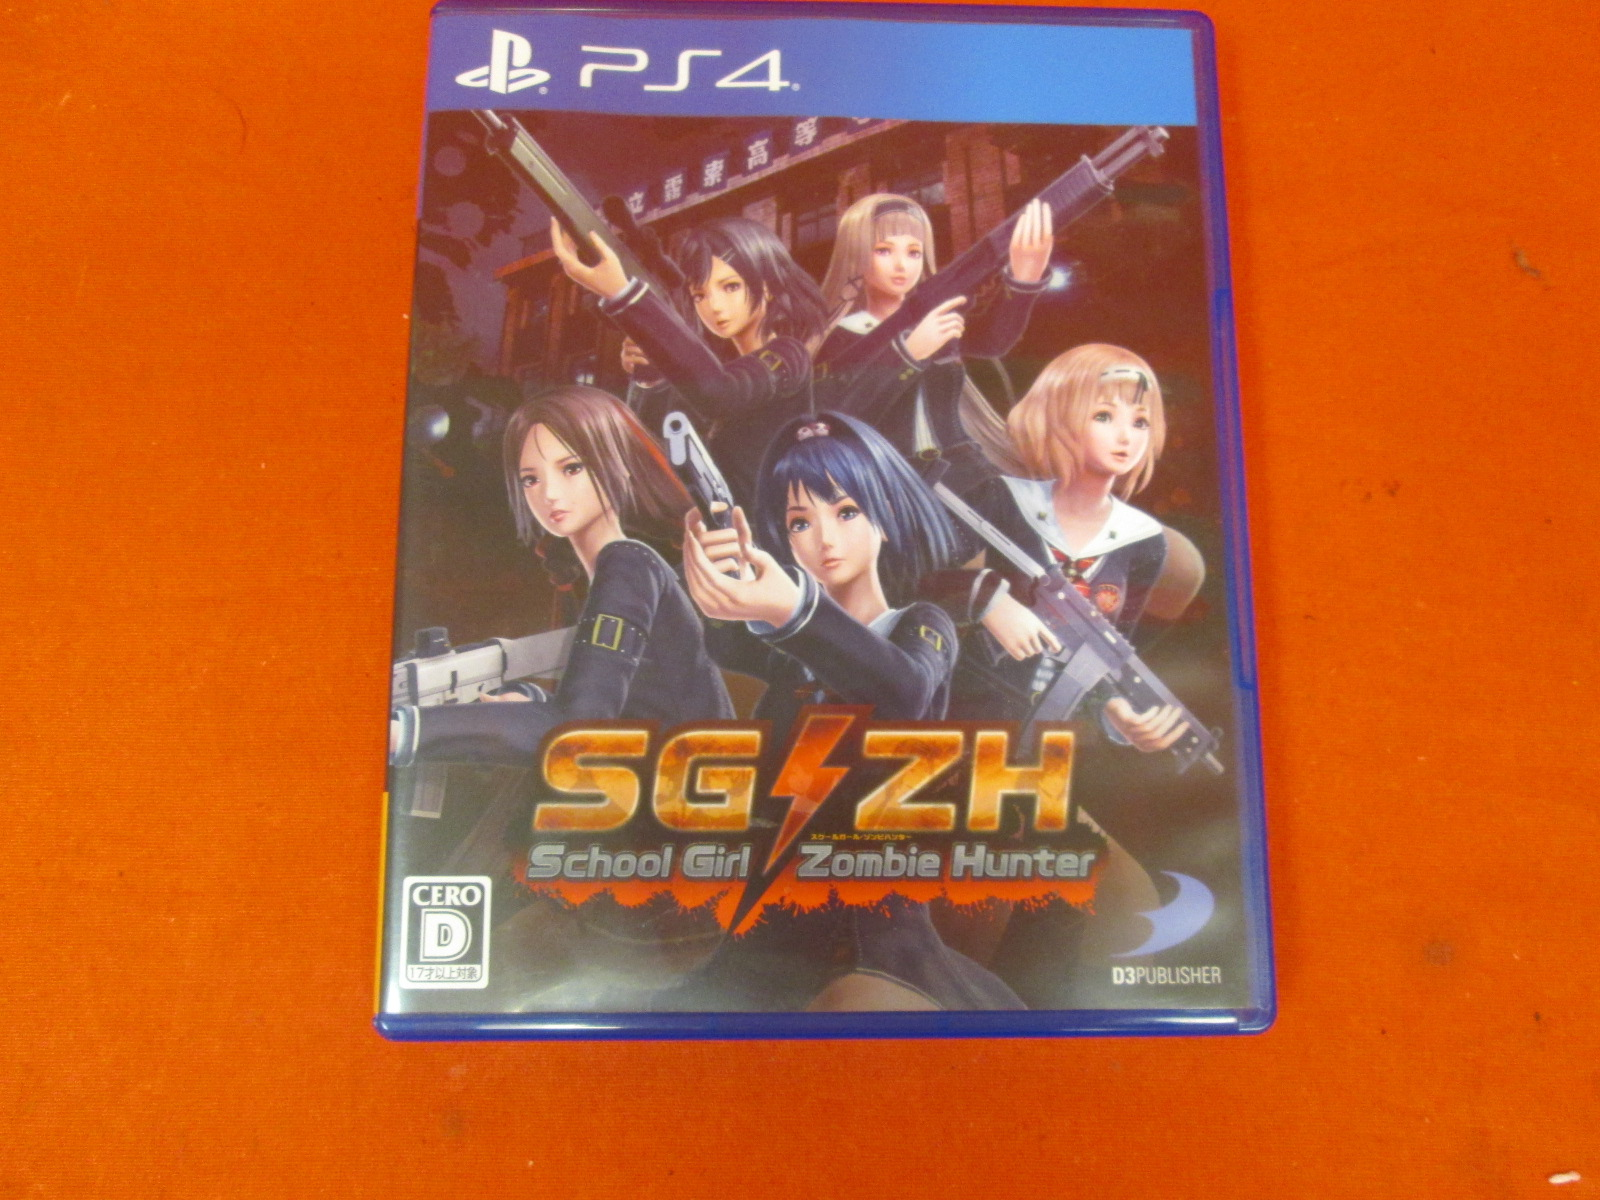 Sg/zh School Girl Zombie Hunter PS4 For PlayStation 4